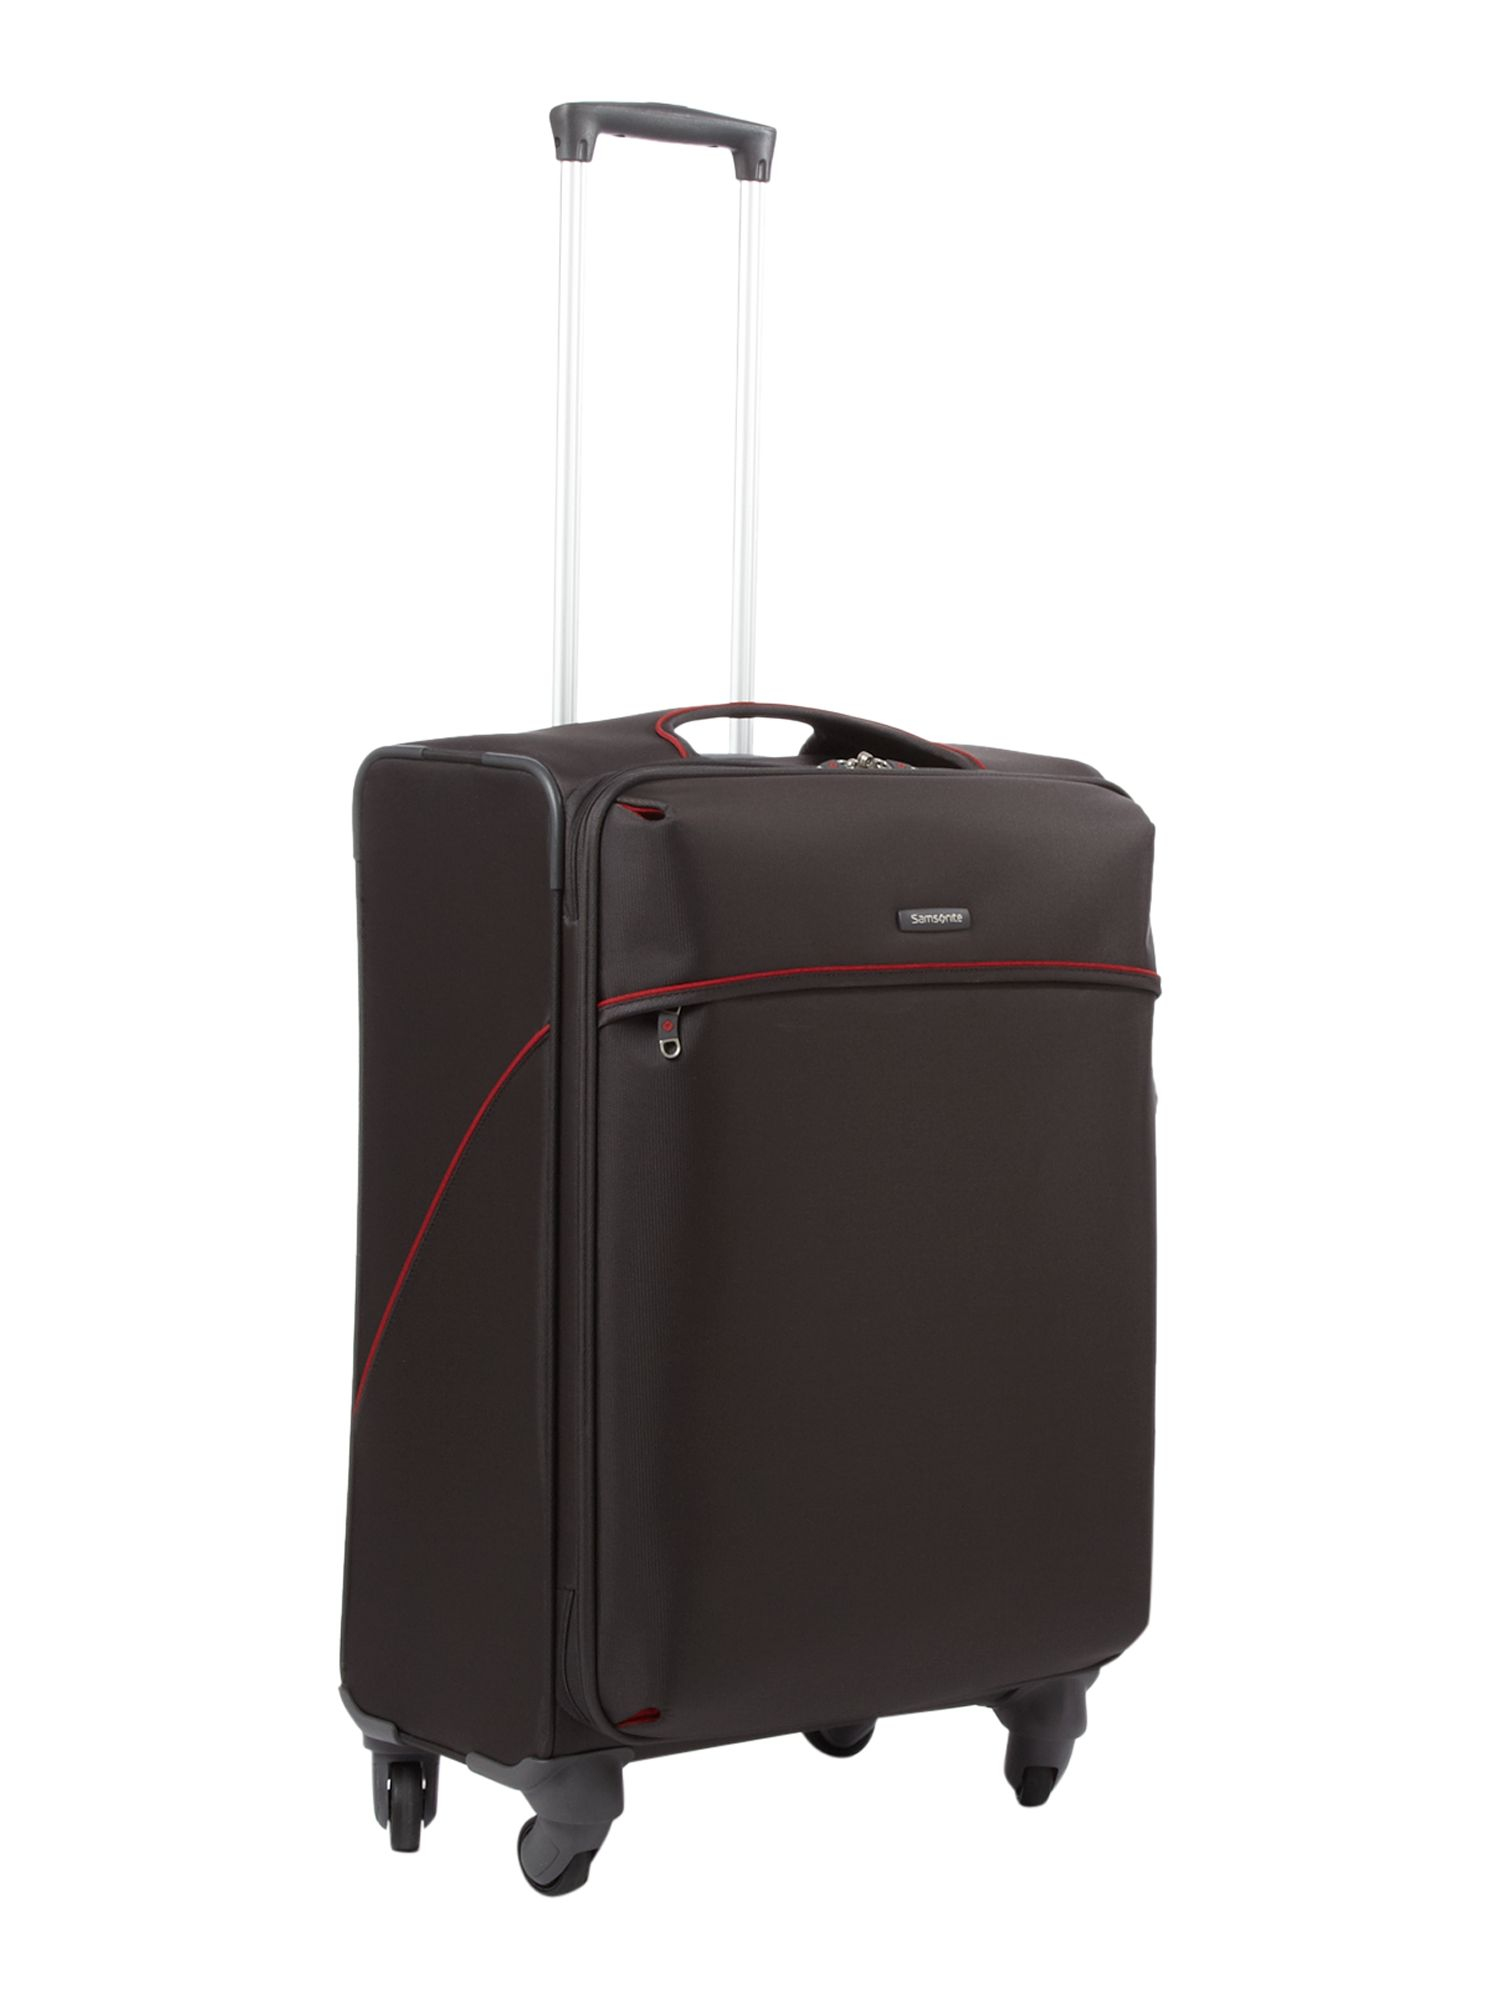 Blite Fresh Charcoal 67cm 4 Wheel Case